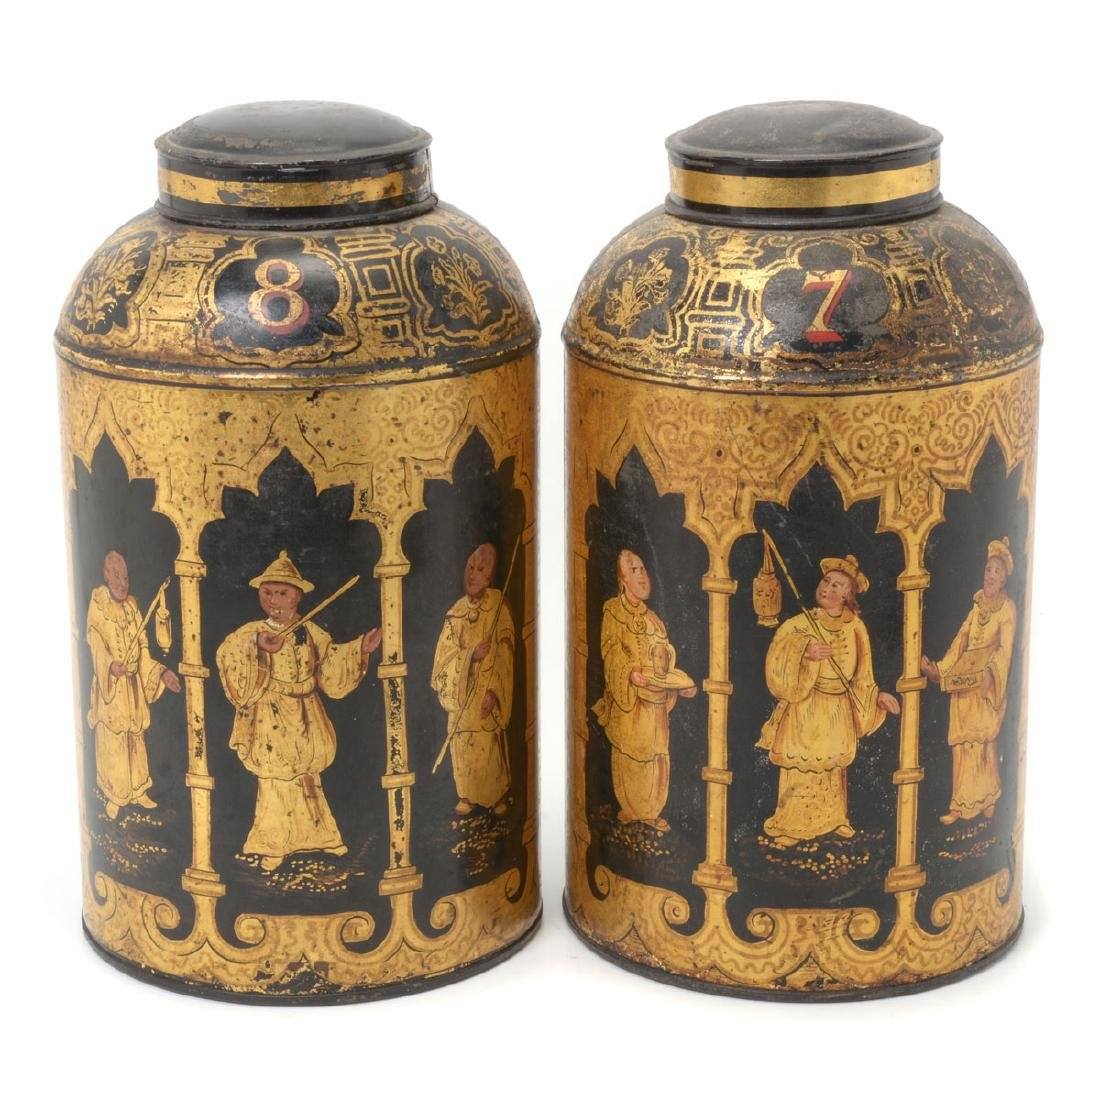 Pair of English Tole Tea Canisters Decorated with